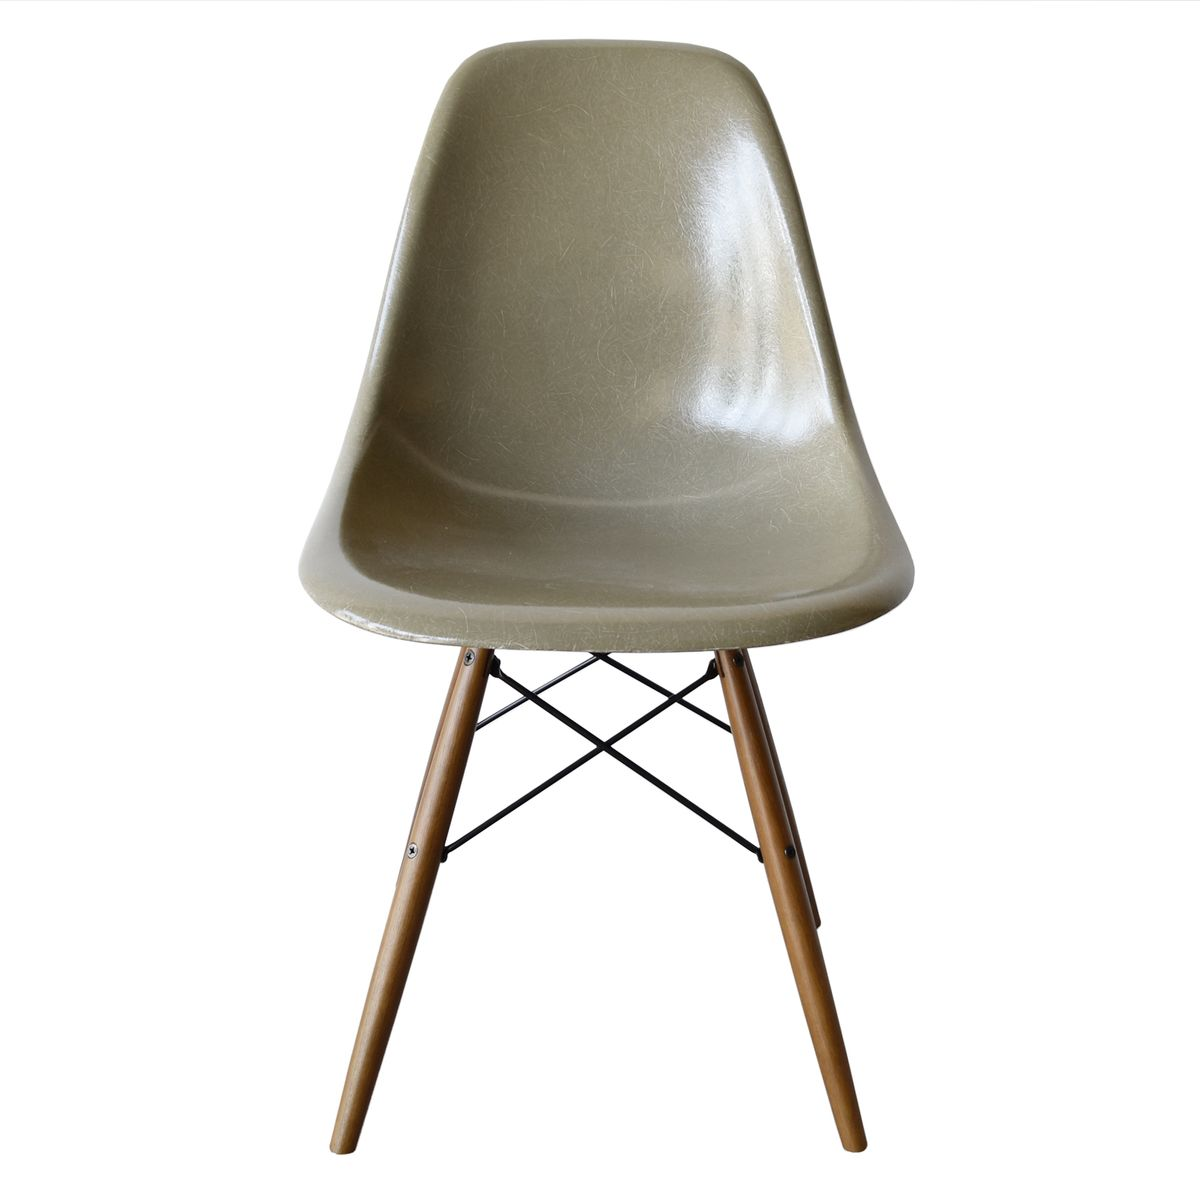 DSW Chair In Raw Umber By Charles And Ray Eames For Herman Miller For Sale At